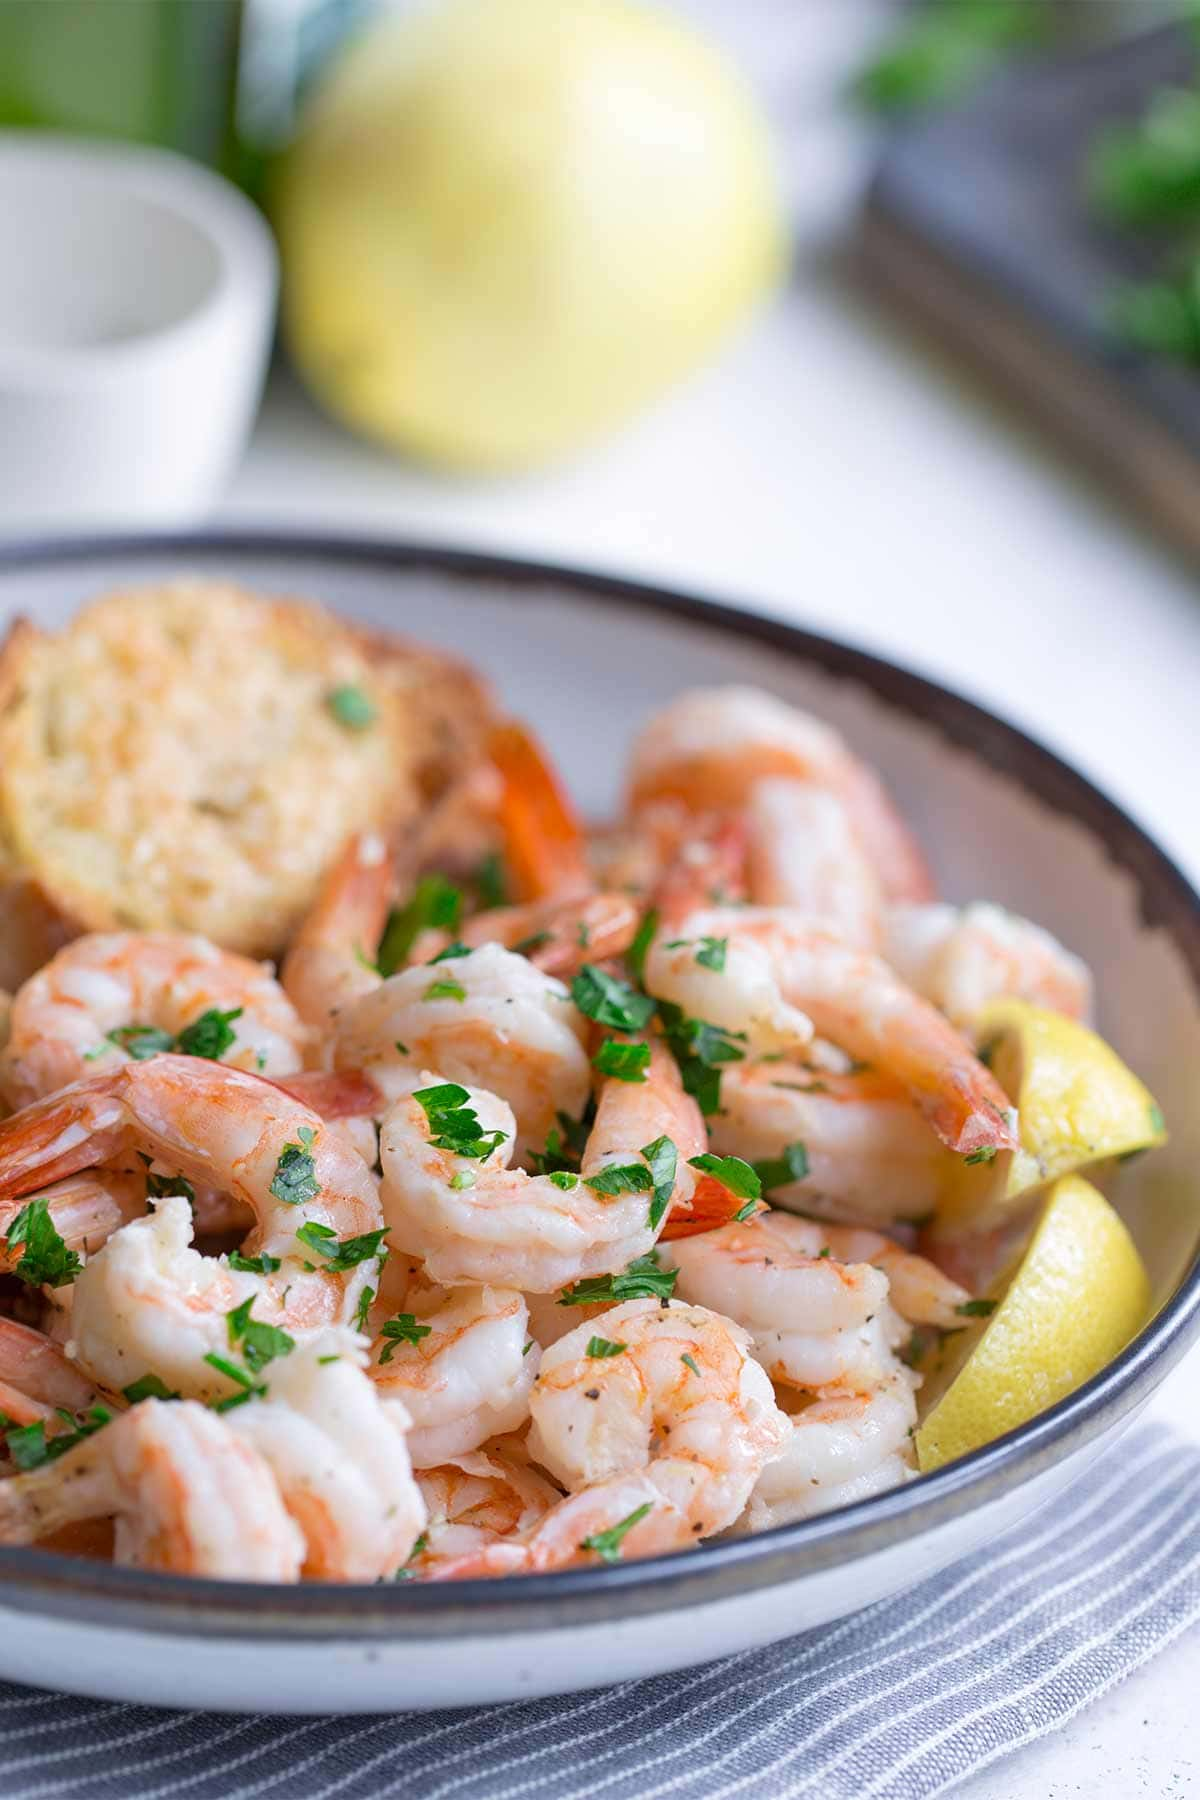 Sheet pan shrimp scampi in a bowl with bread and lemon